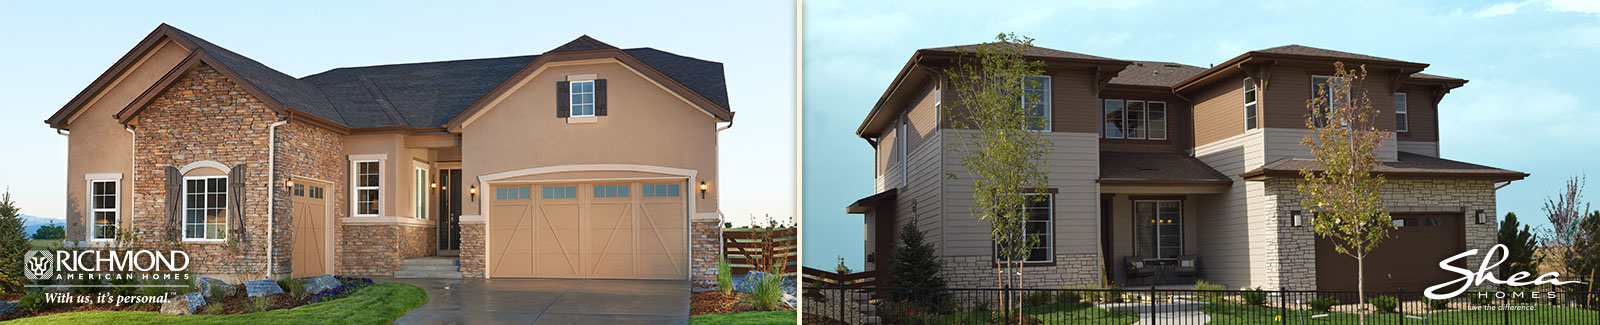 Home Builders In Erie Co Shea Homes Richmond Homes Colliers Hill Colliers Hill In Erie